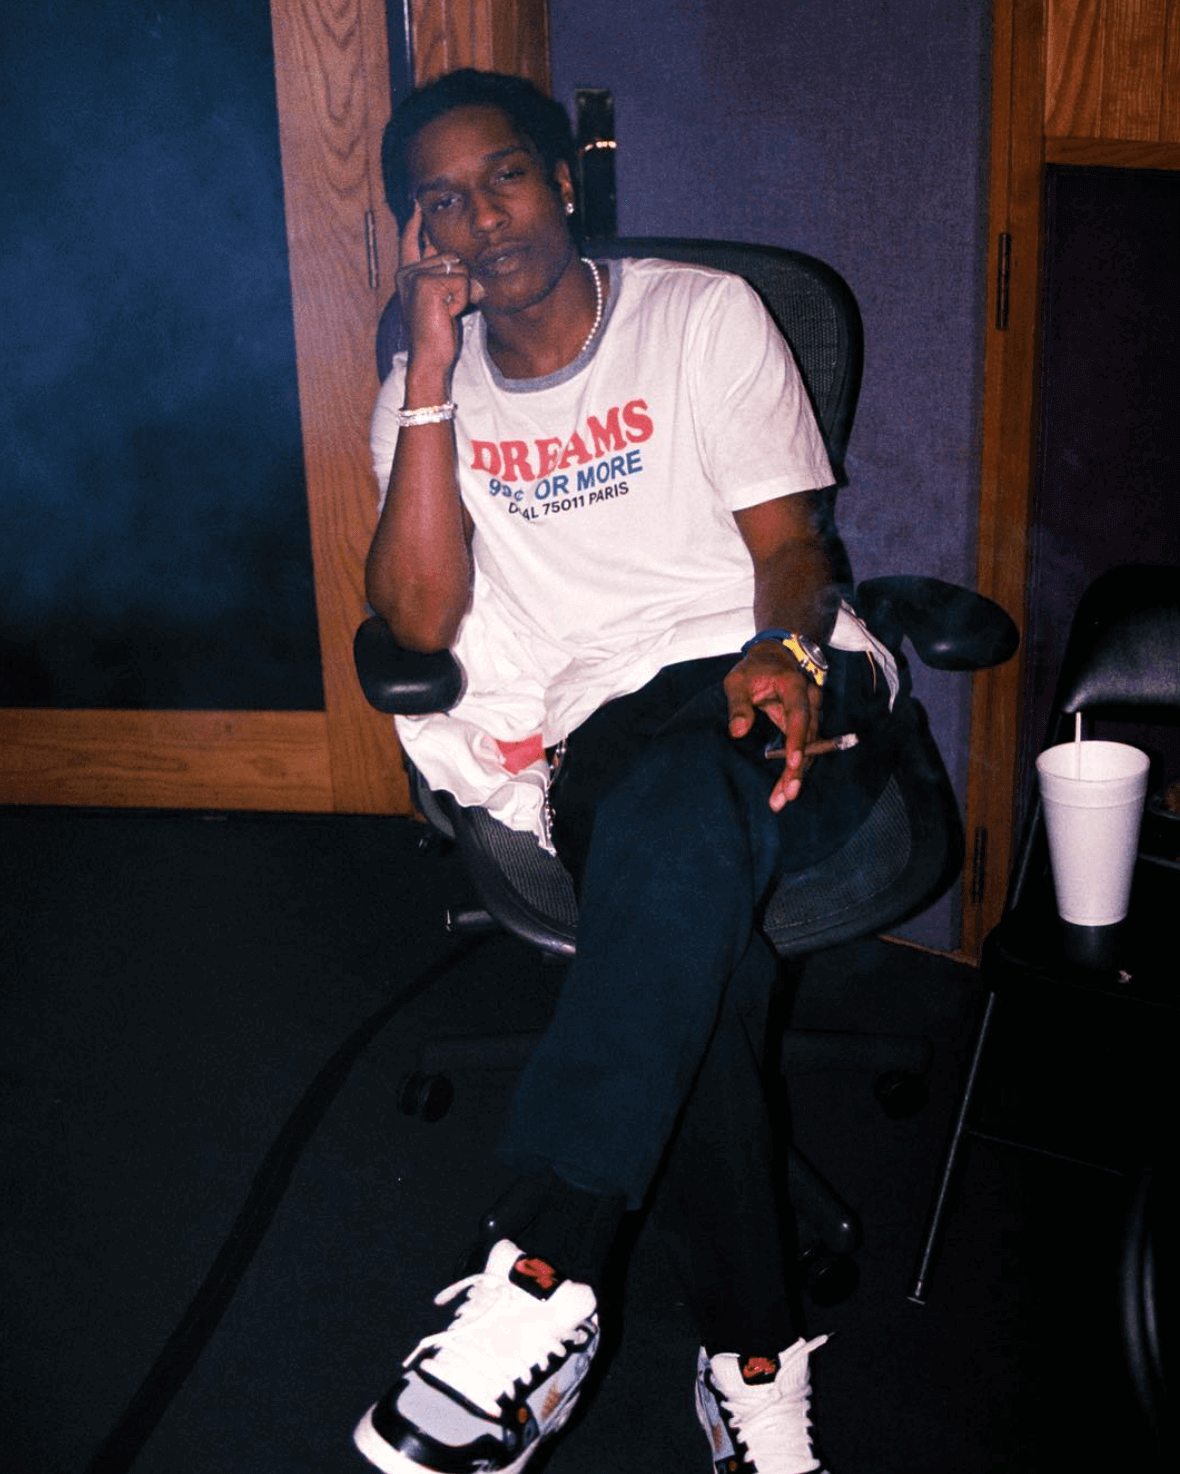 Asap Rocky in the Futura x Nike P Rod 1 Elite